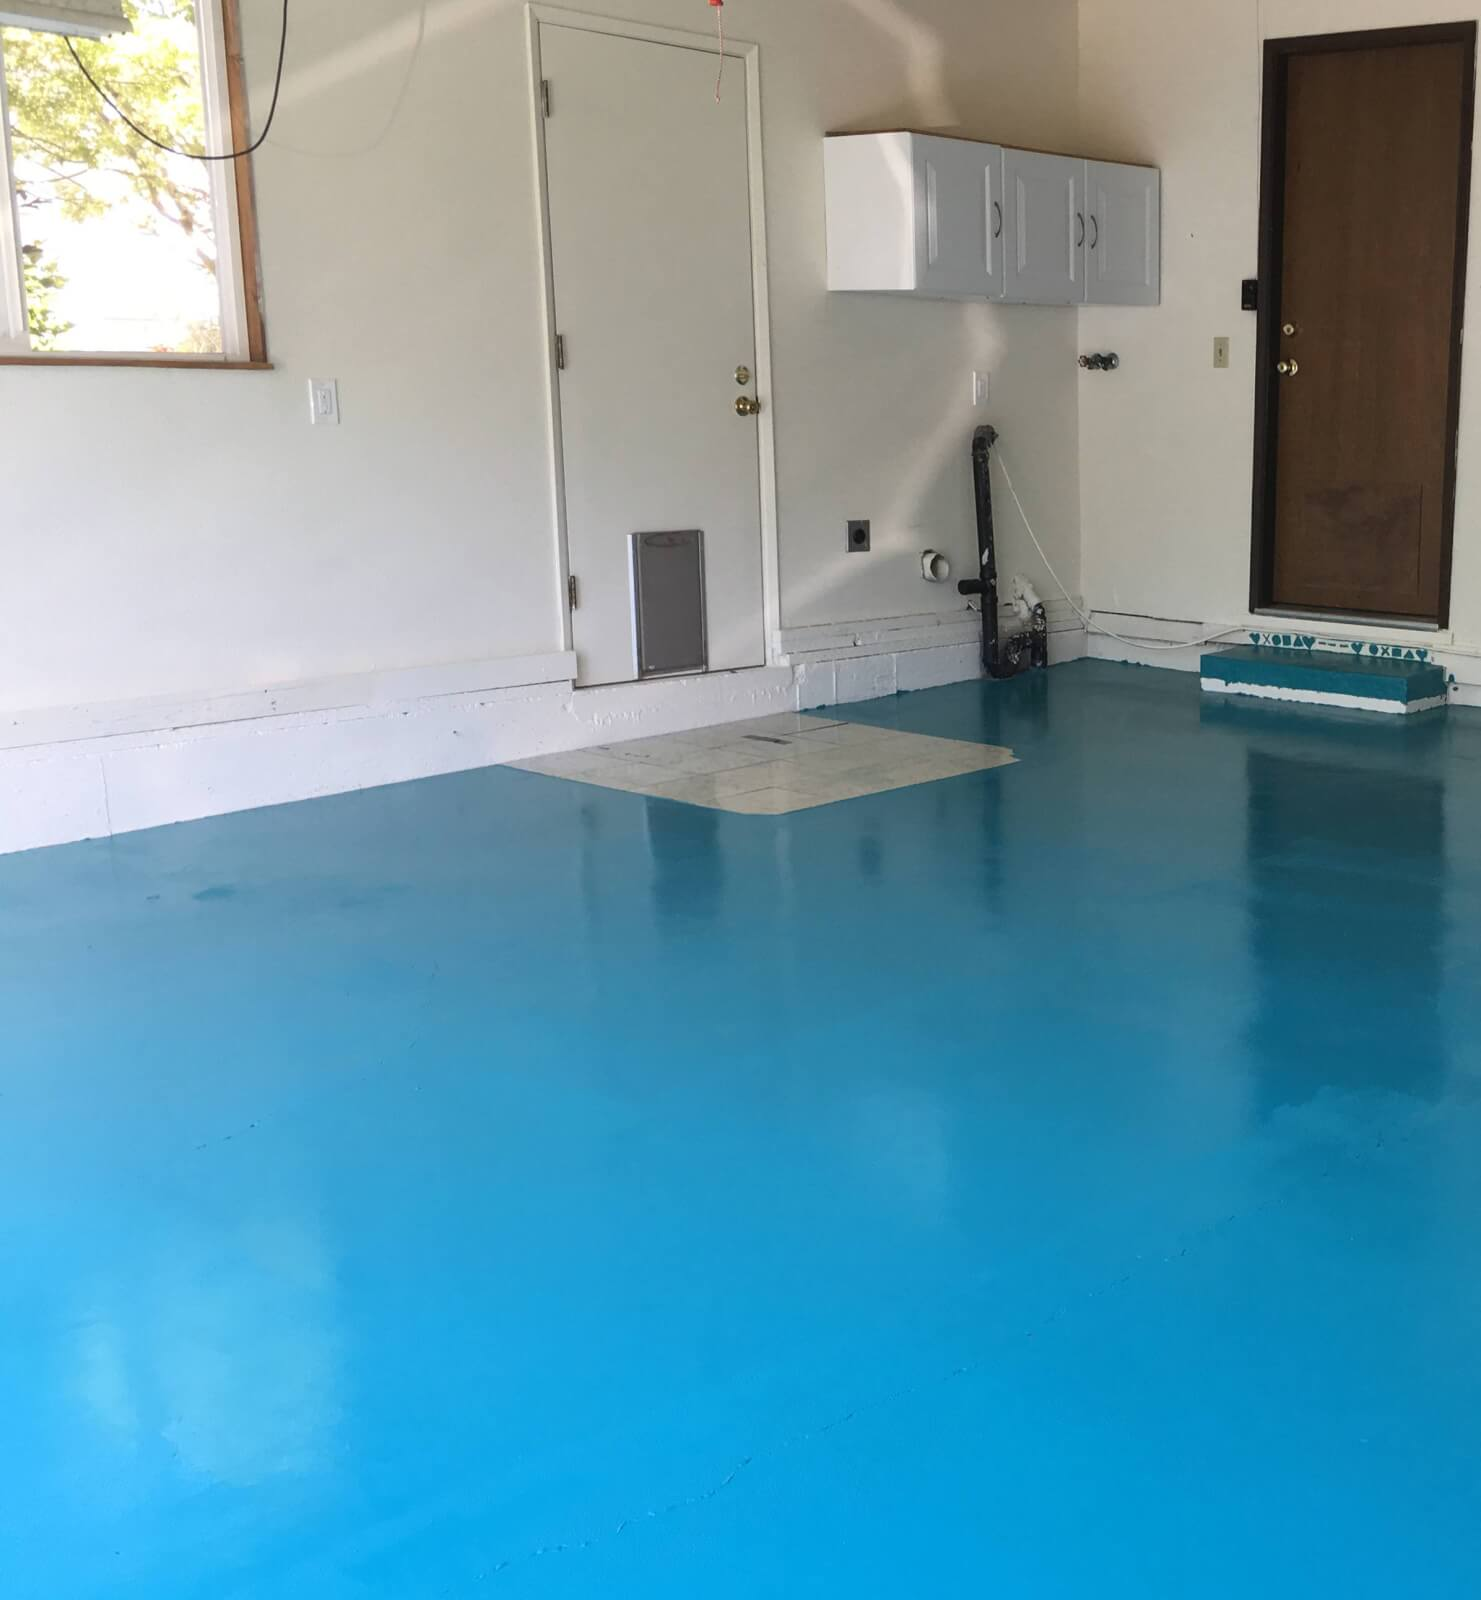 Why use Garage Flooring? What is The Purpose?